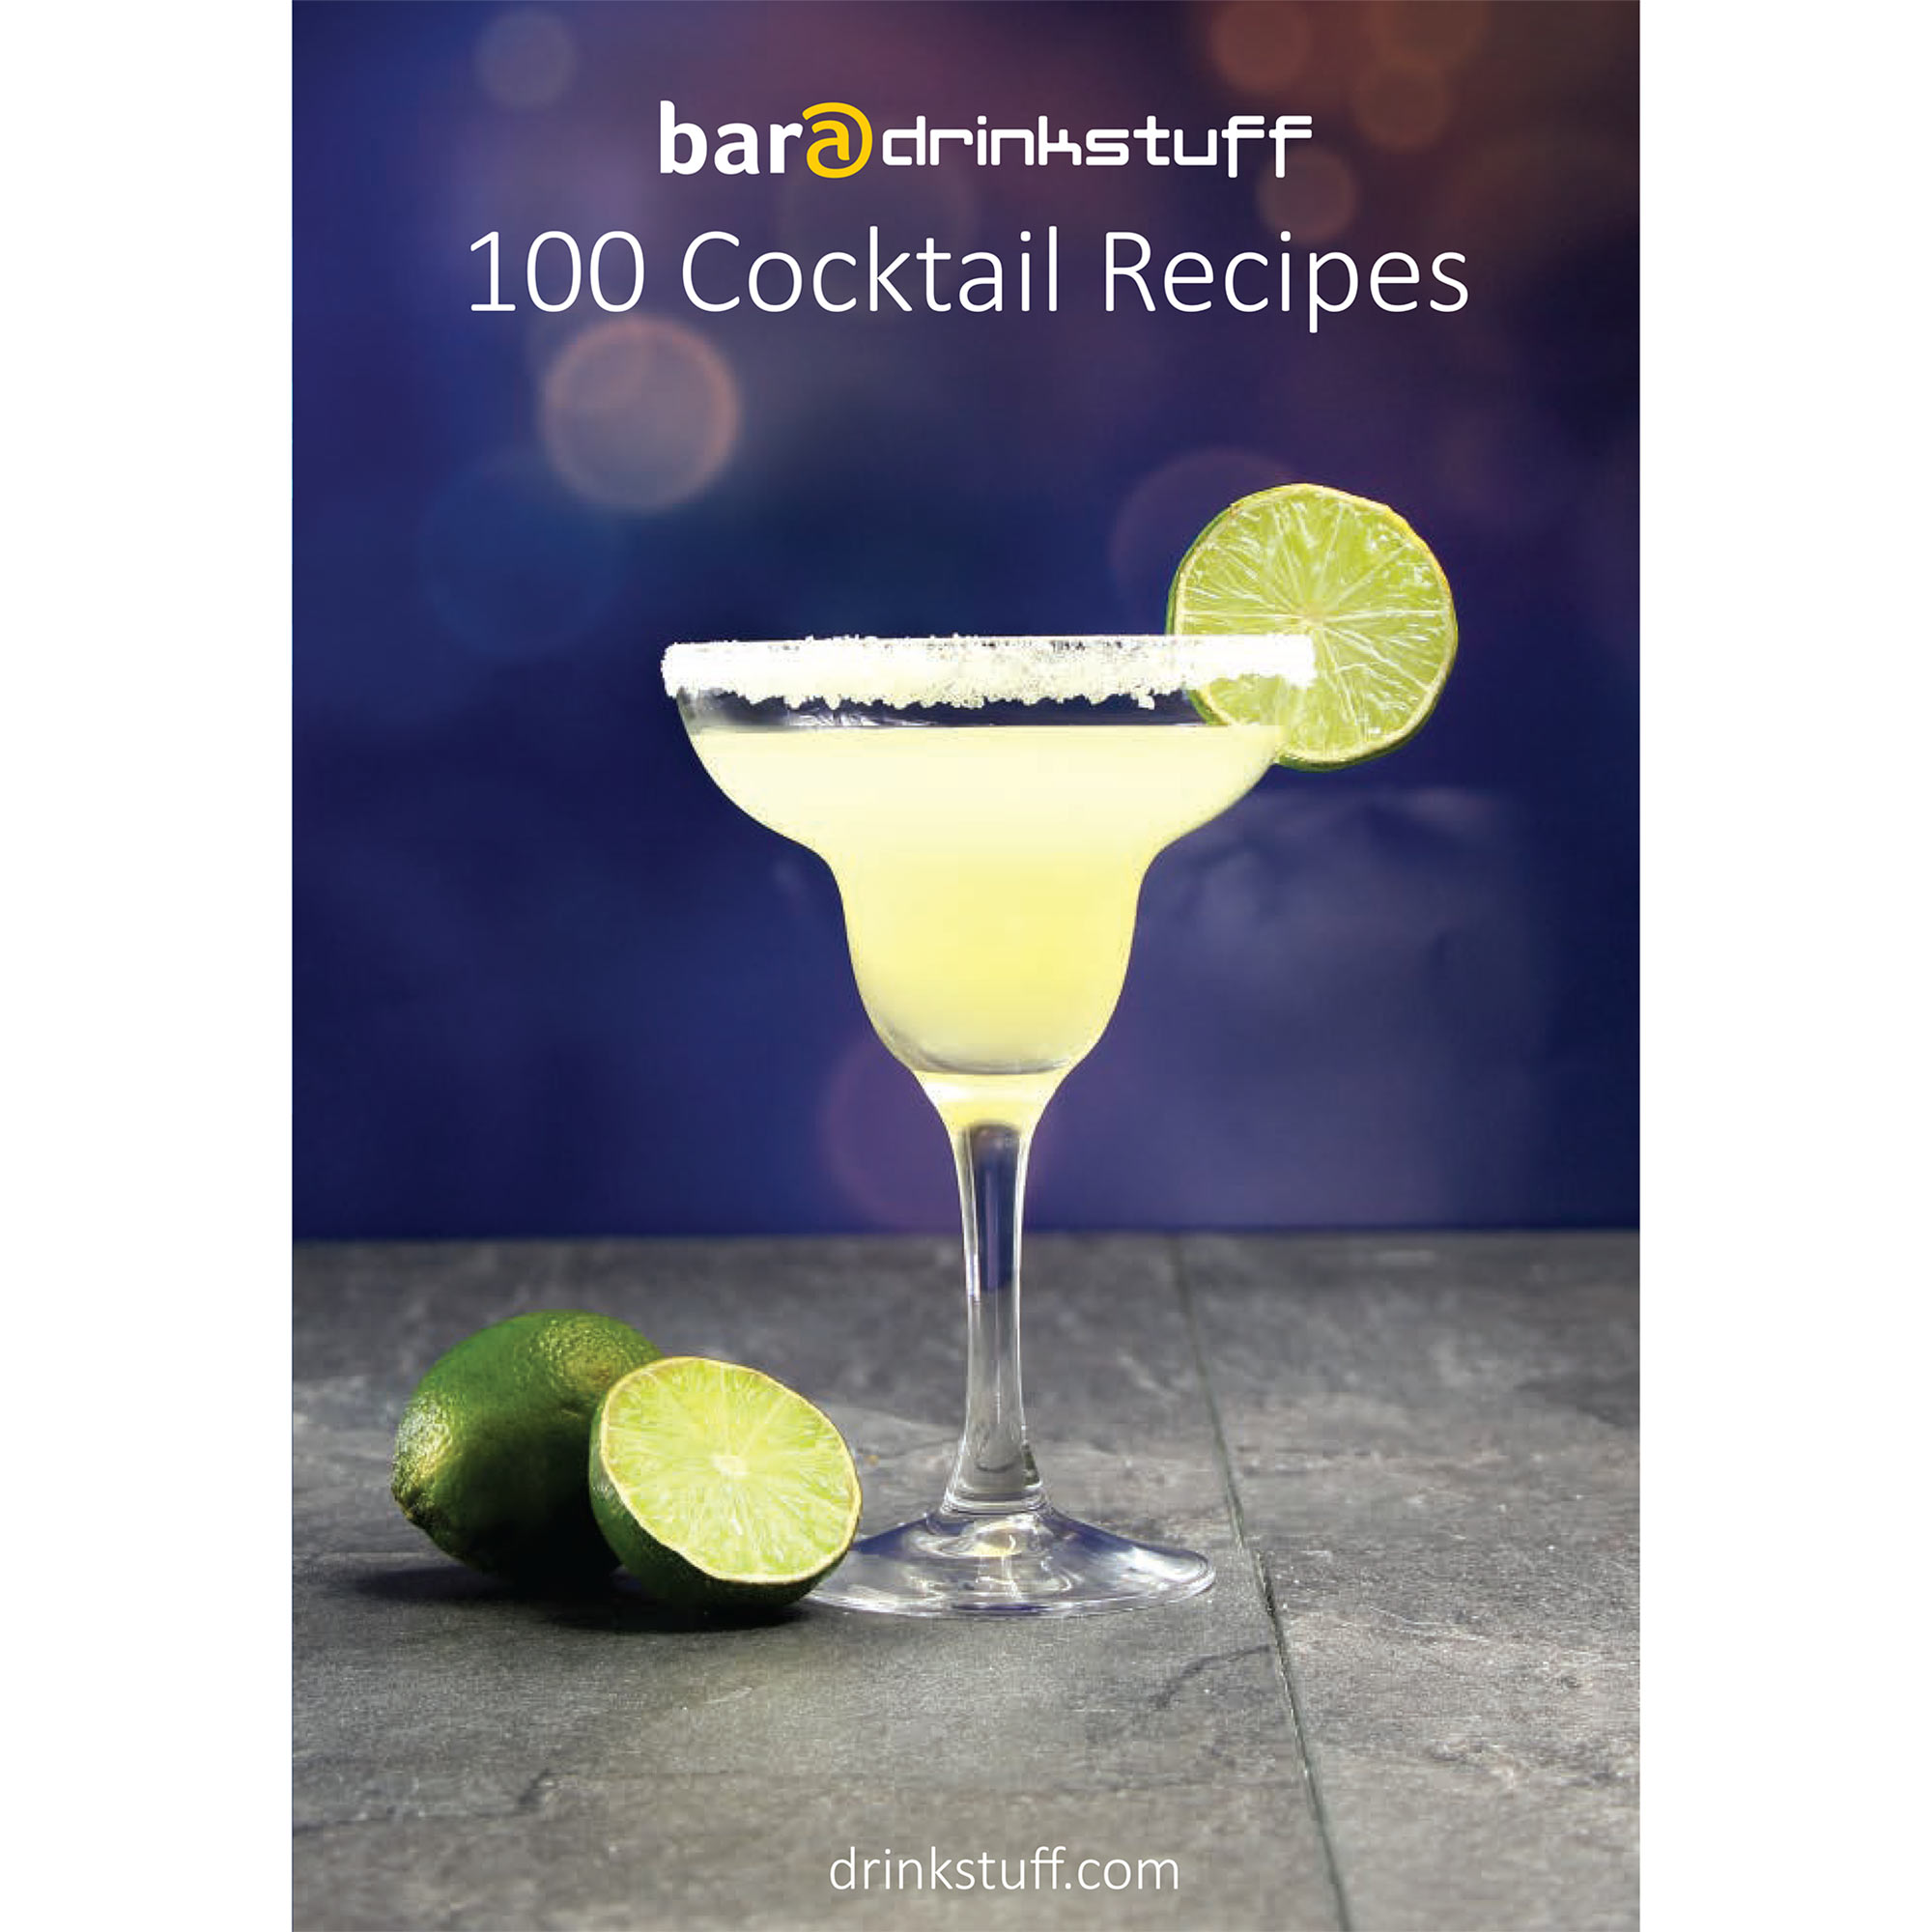 100 Cocktail Recipes Book Make Your Own Cocktails At Home